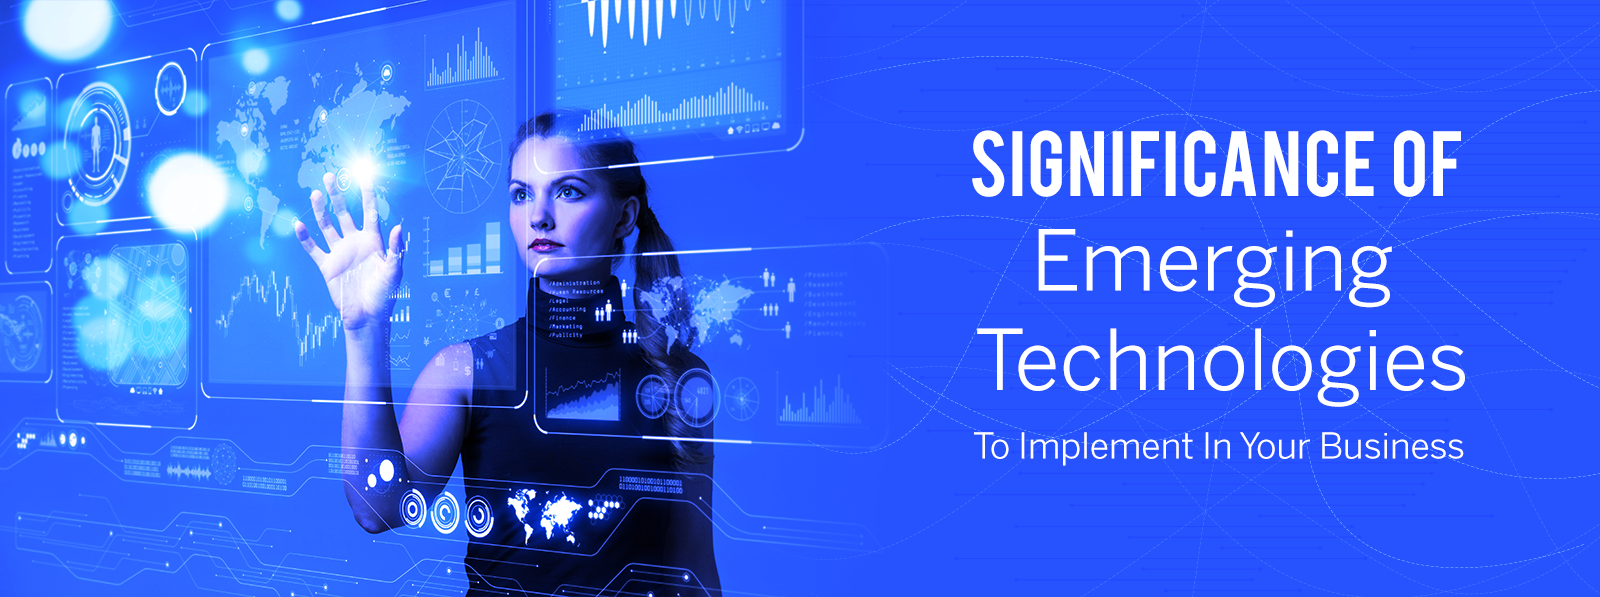 Emerging Technologies Significance